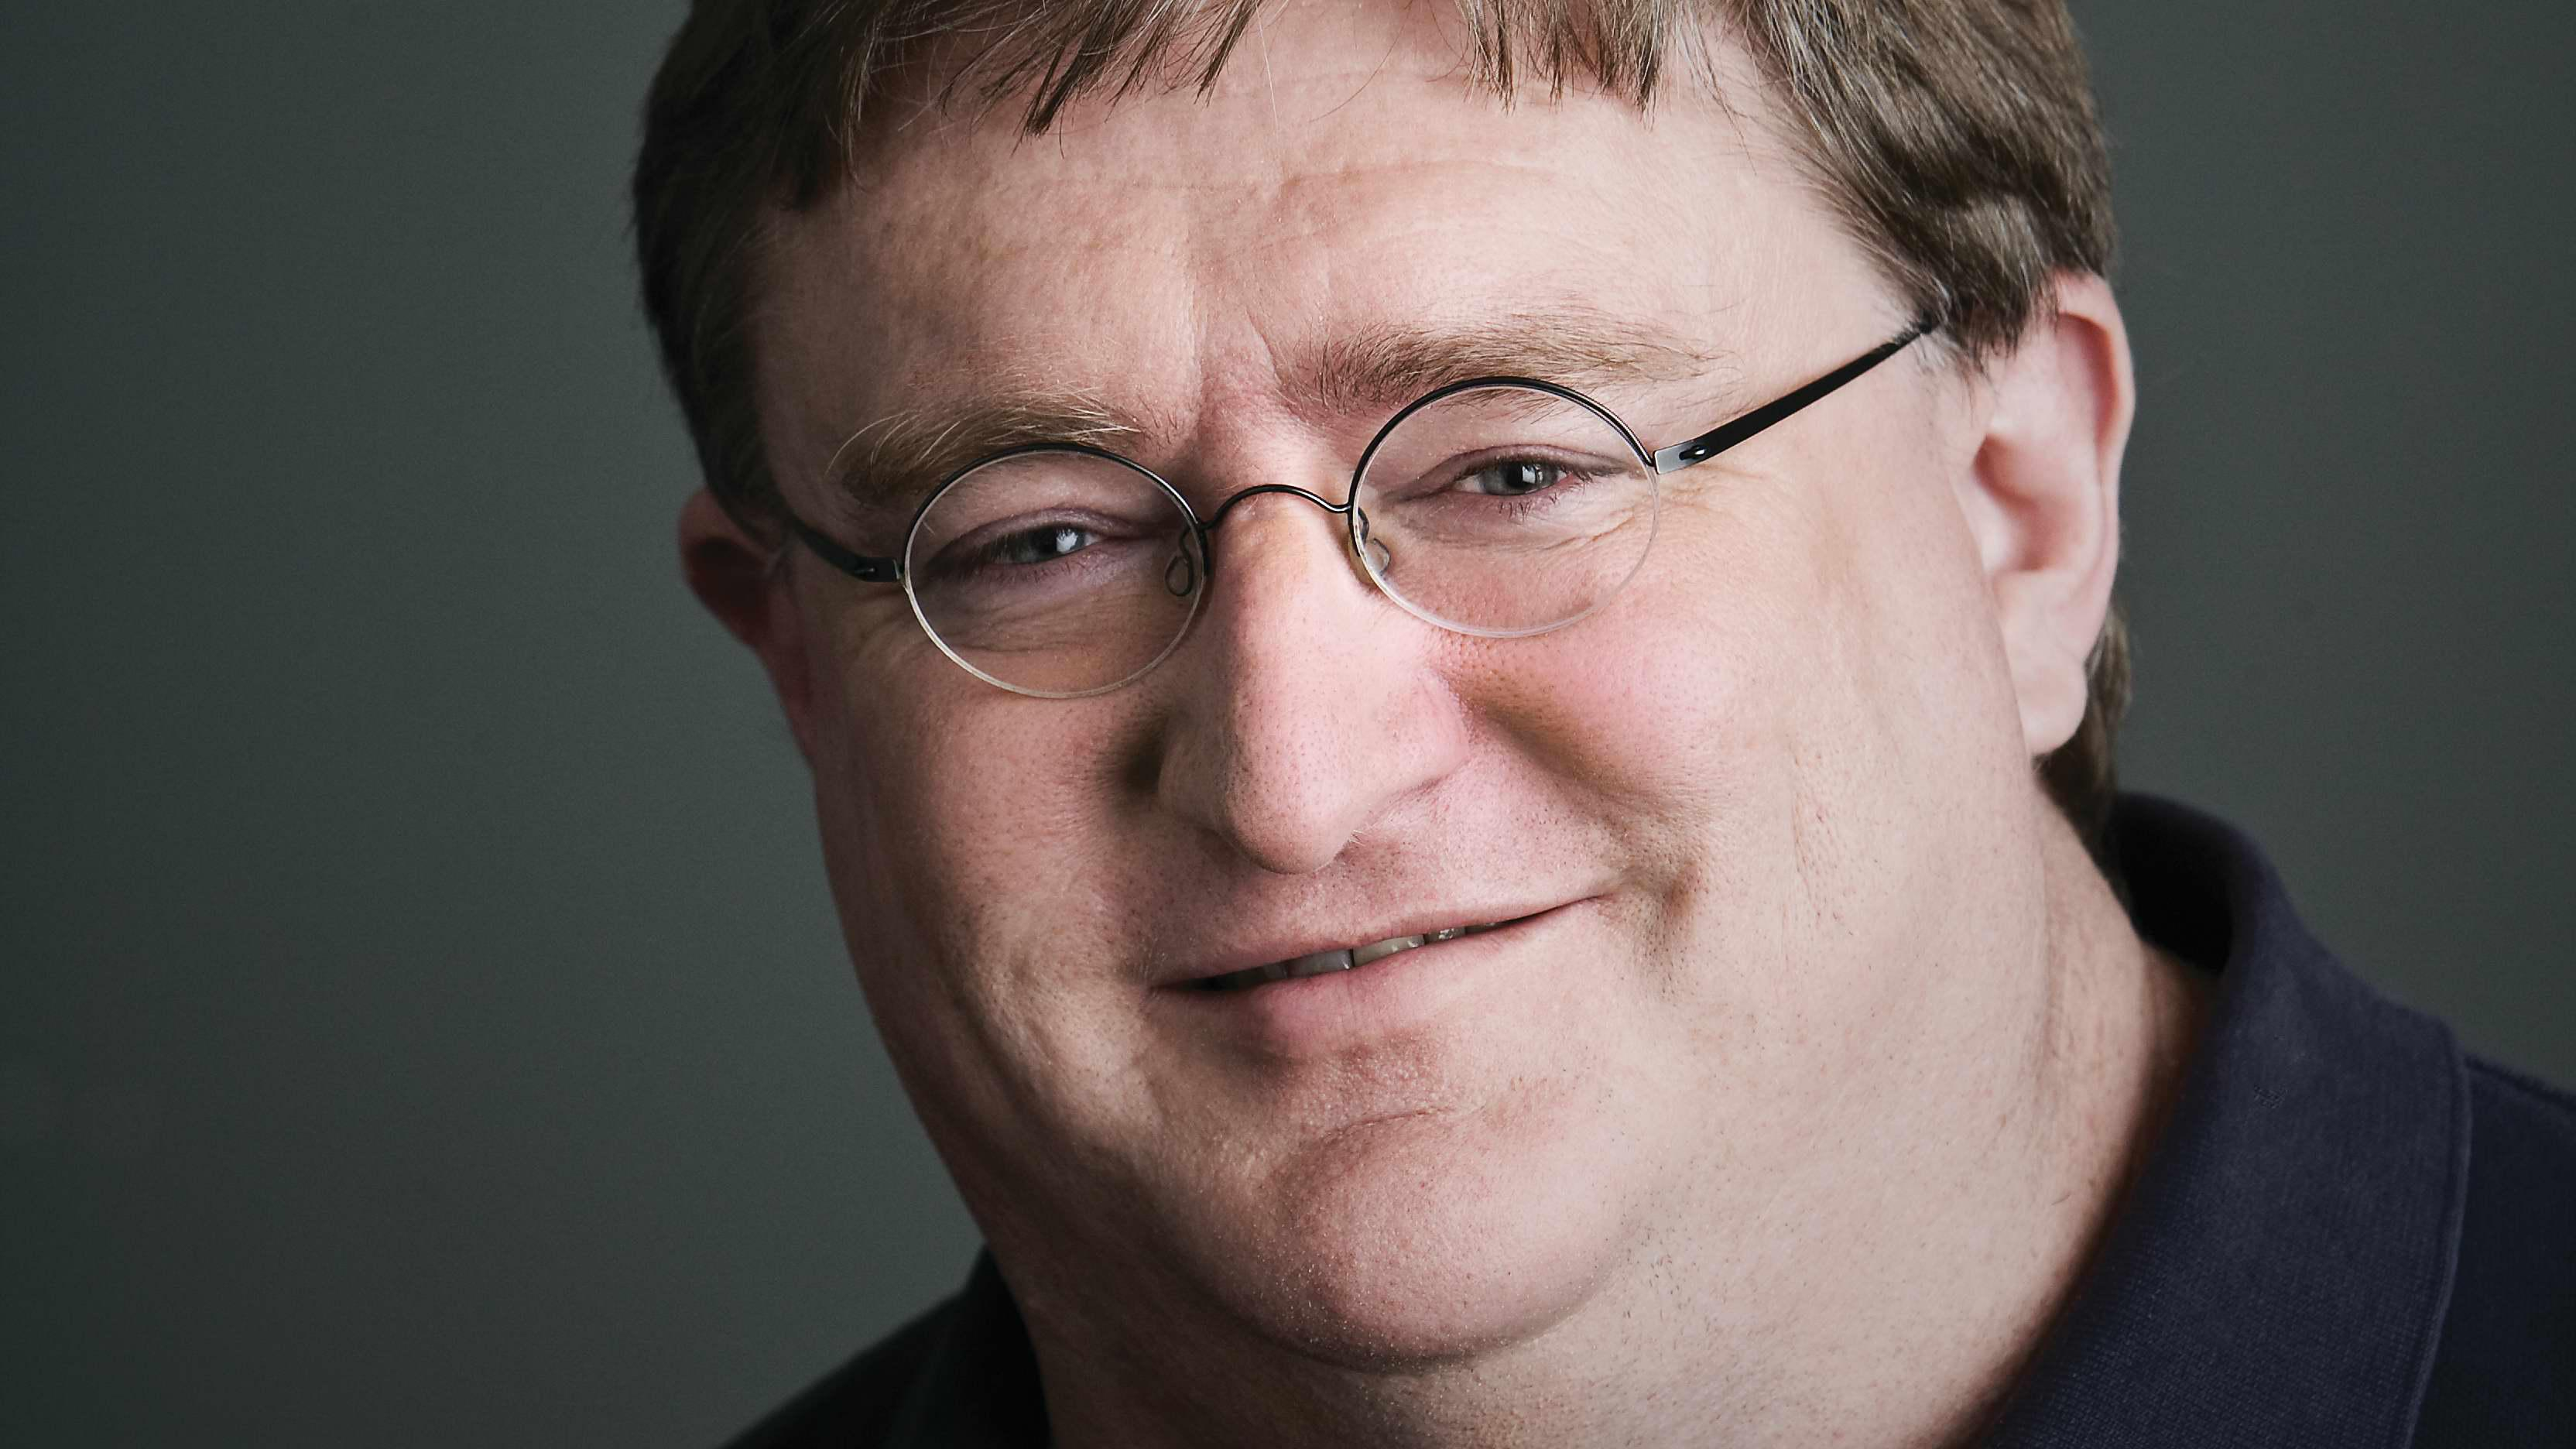 Gabe Newell Backgrounds, Compatible - PC, Mobile, Gadgets| 3328x1872 px